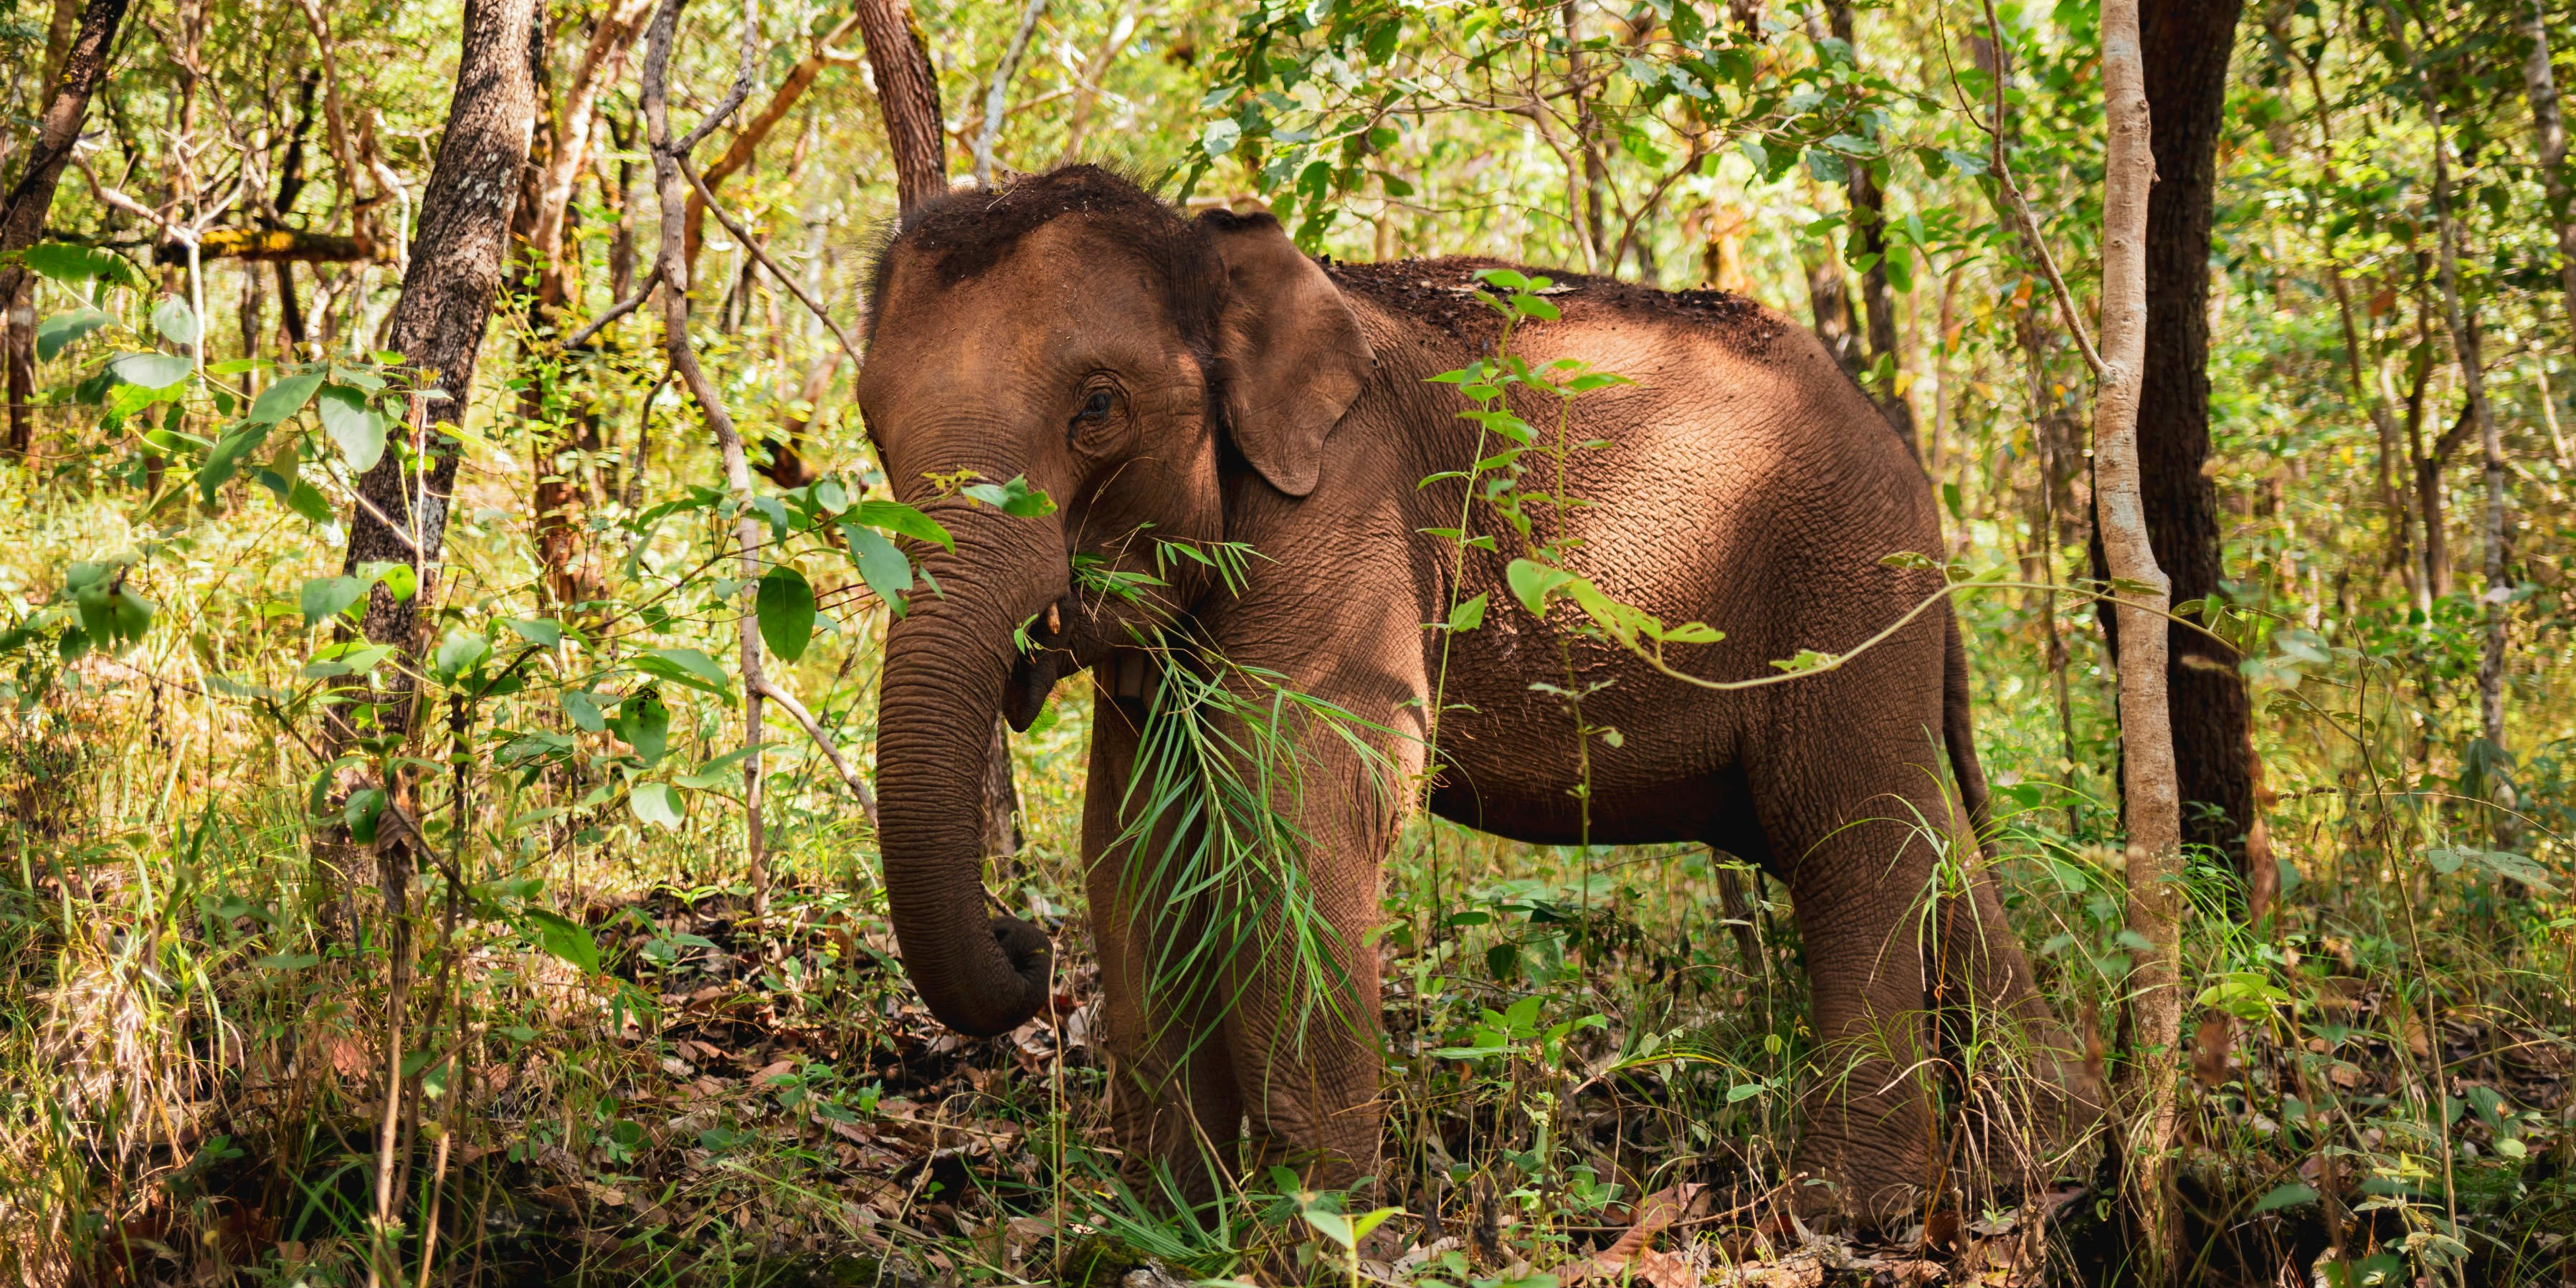 The luckiest elephants in Thailand, are free to forage and roam in their natural habitat - the forest.